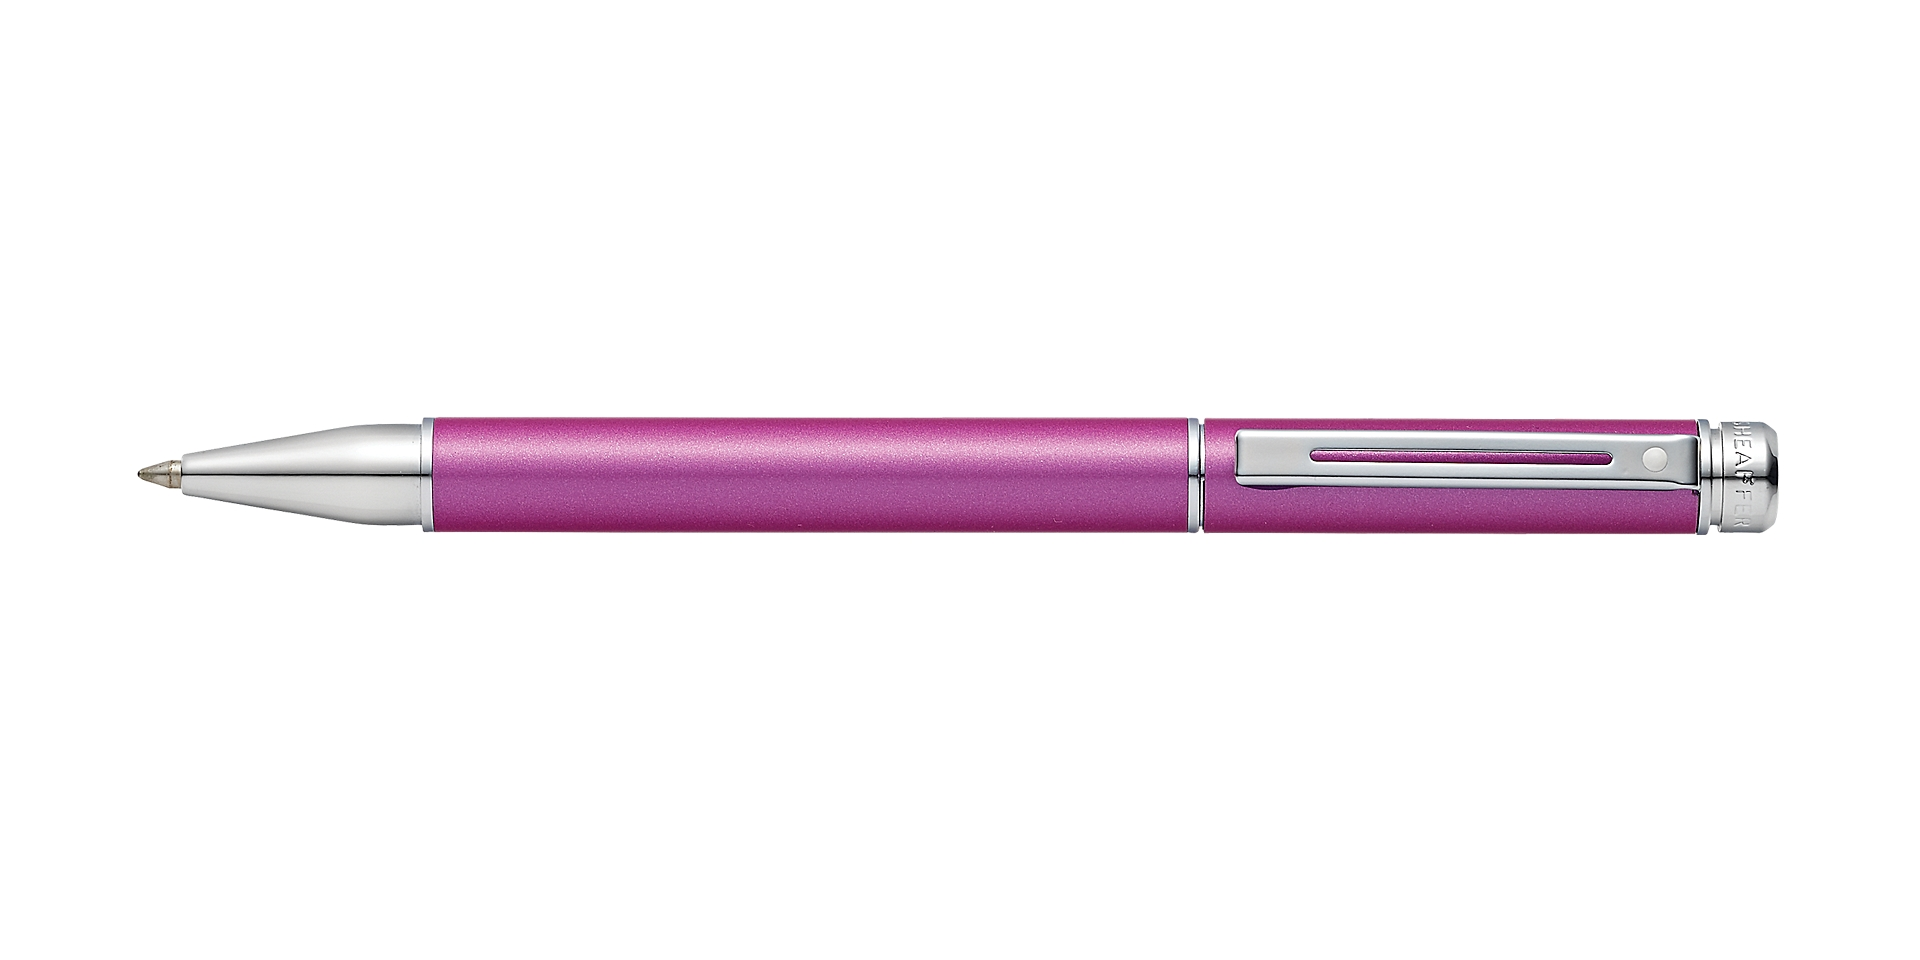 Cross Sheaffer 200 Matte Metallic Pink Ballpoint Pen Picture